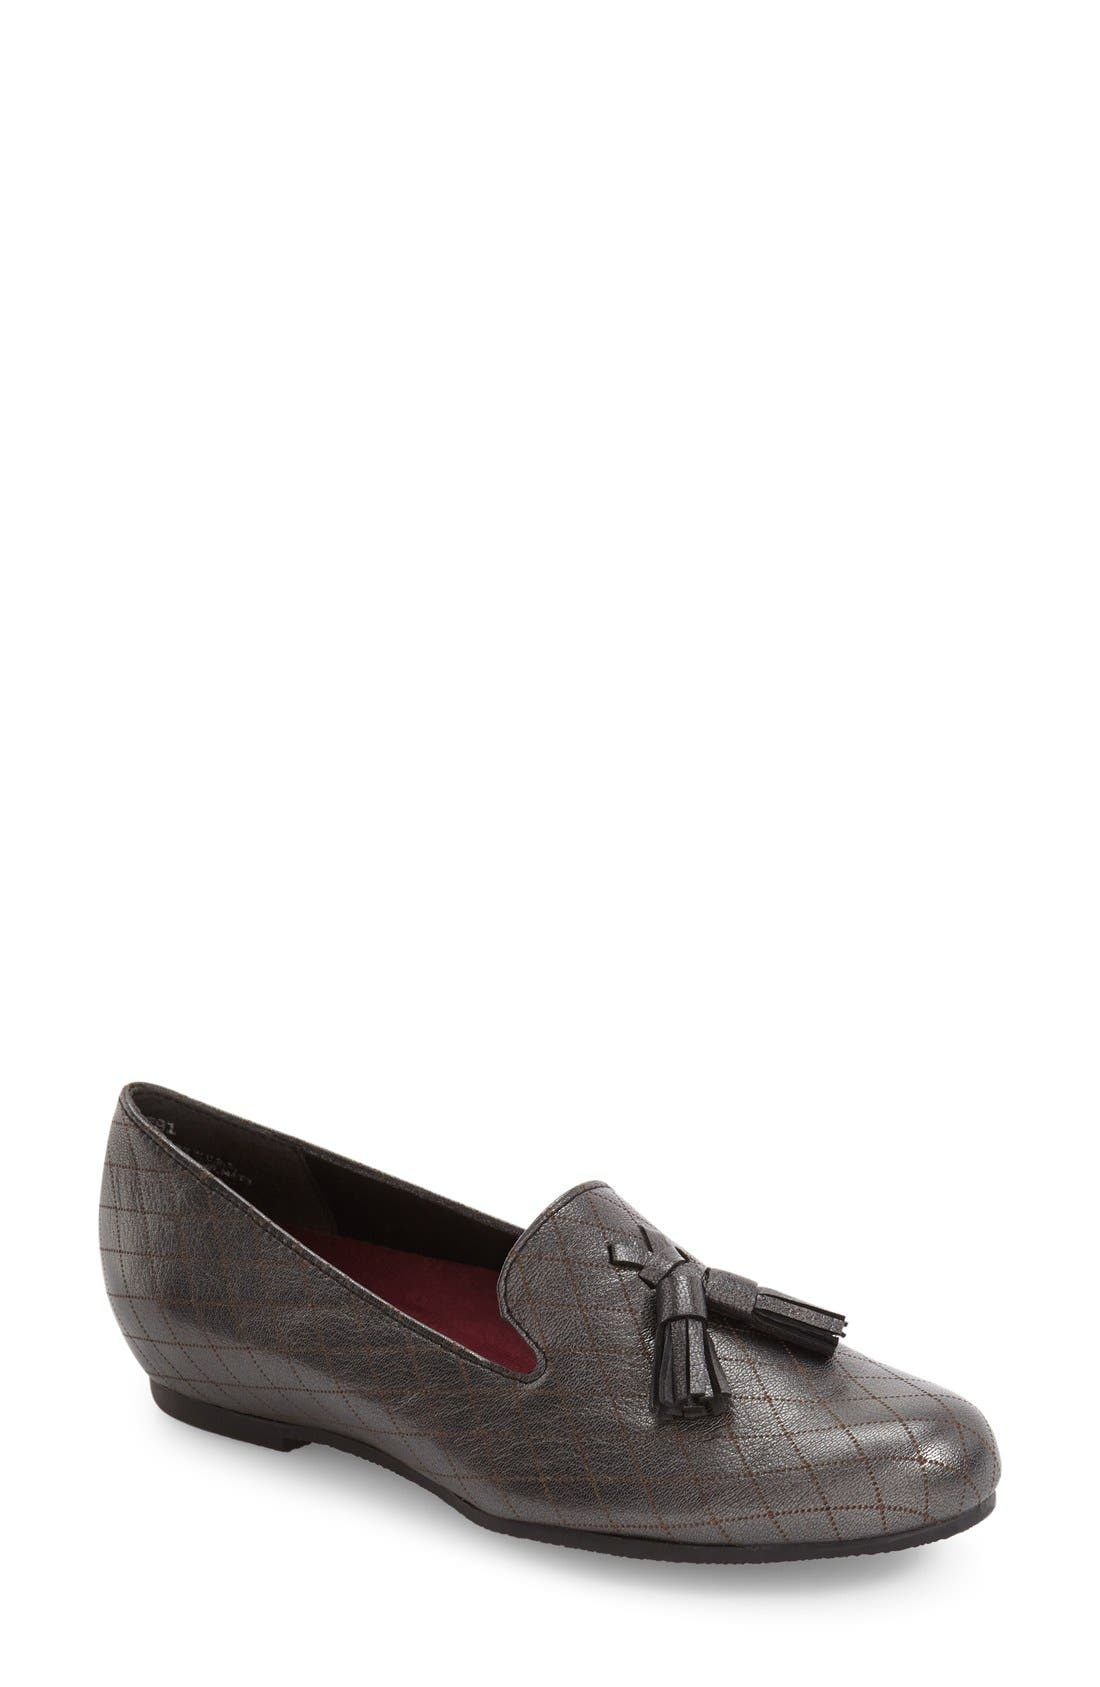 Munro Tallie Tassel Loafer (Women)